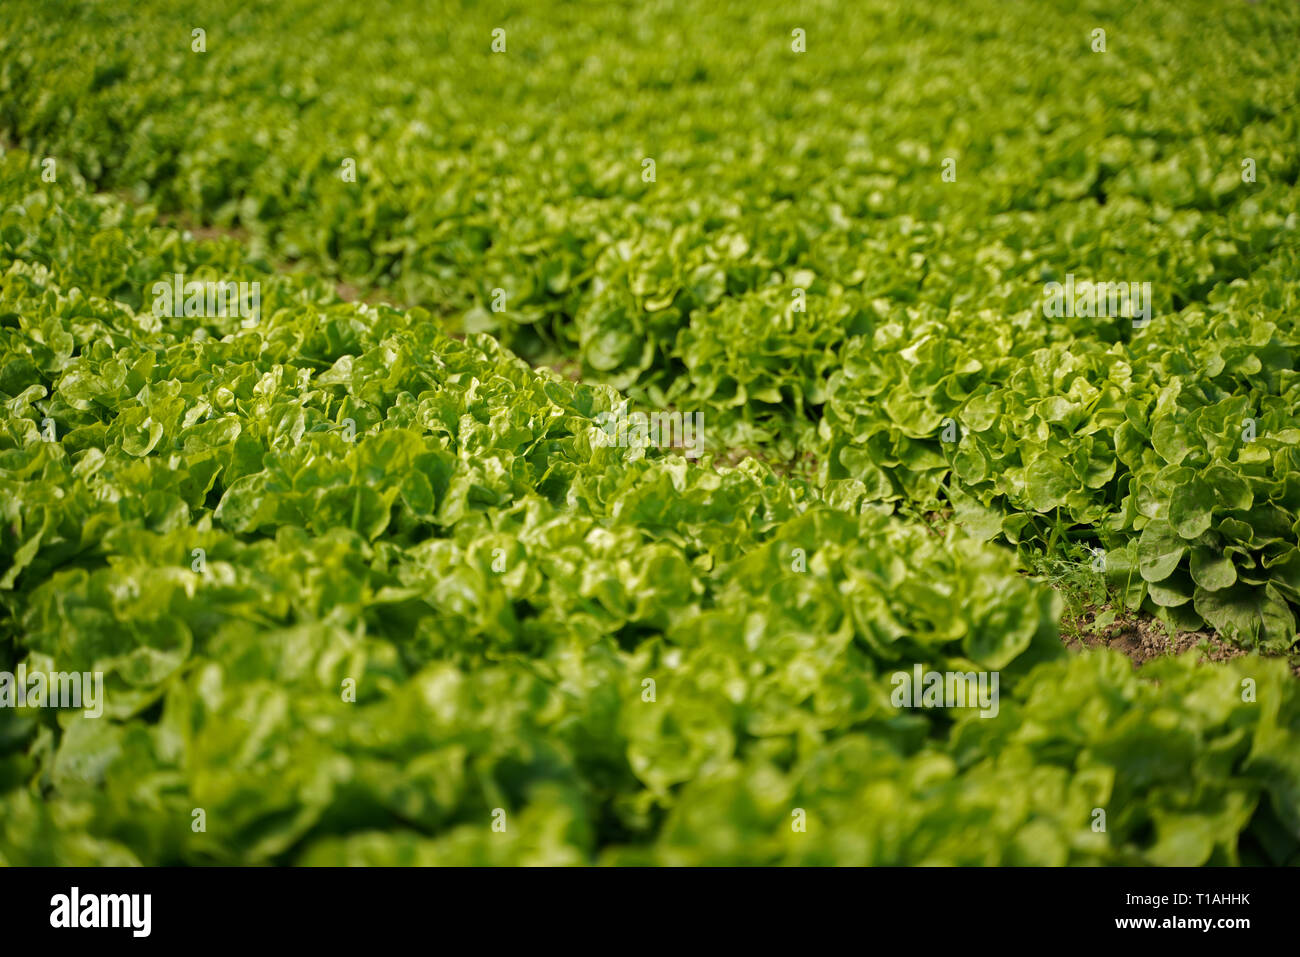 Salad on a field - Stock Image